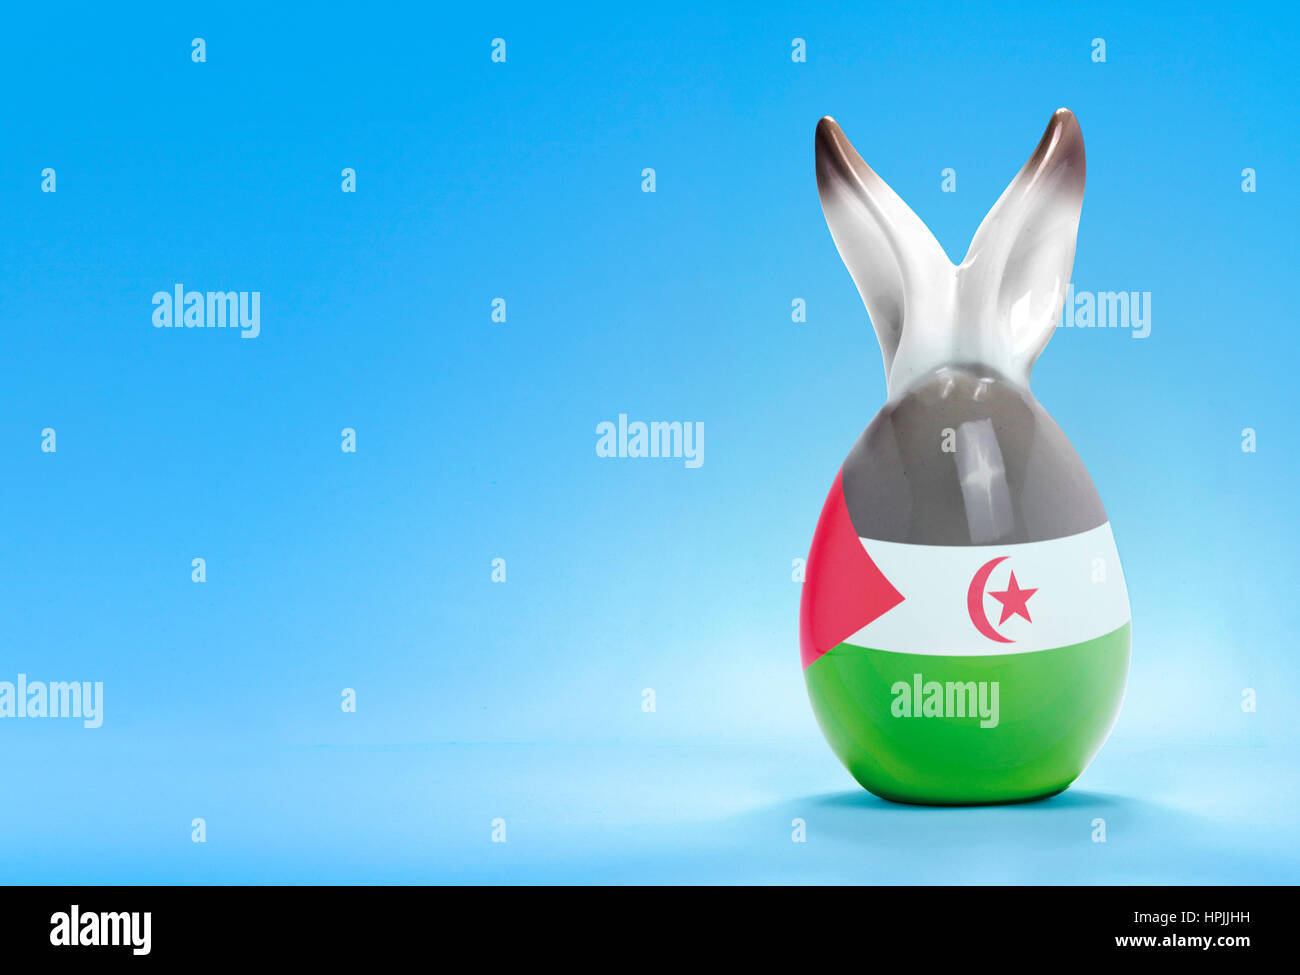 Colorful cute ceramic easter egg with rabbit ears and the flag of Western Sahara .(series) Stock Photo